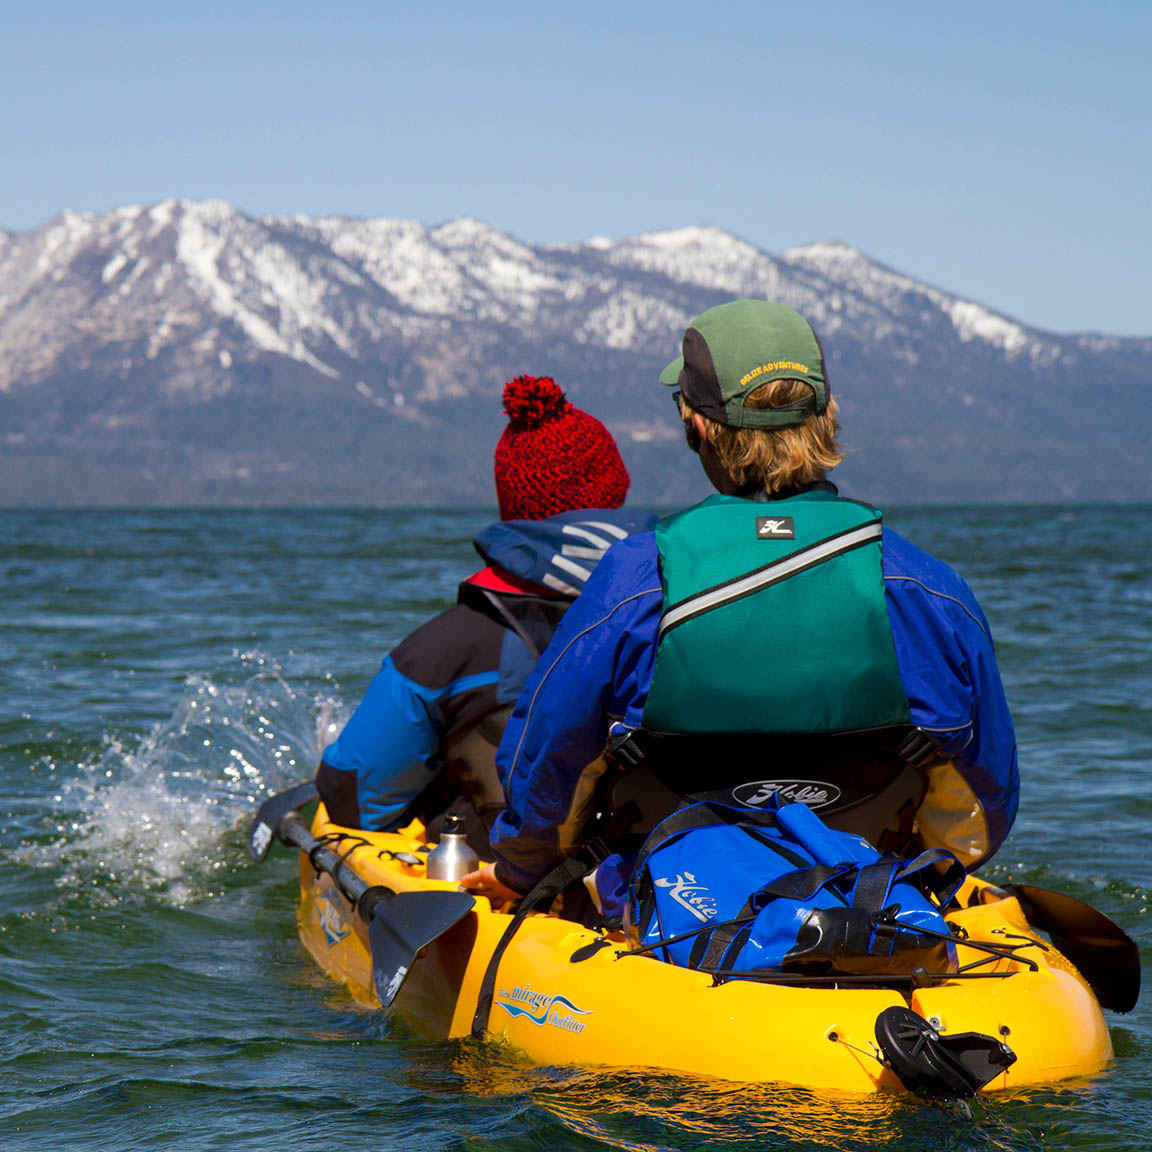 Hobie Mirage Outfitter Tandem Kayak Review